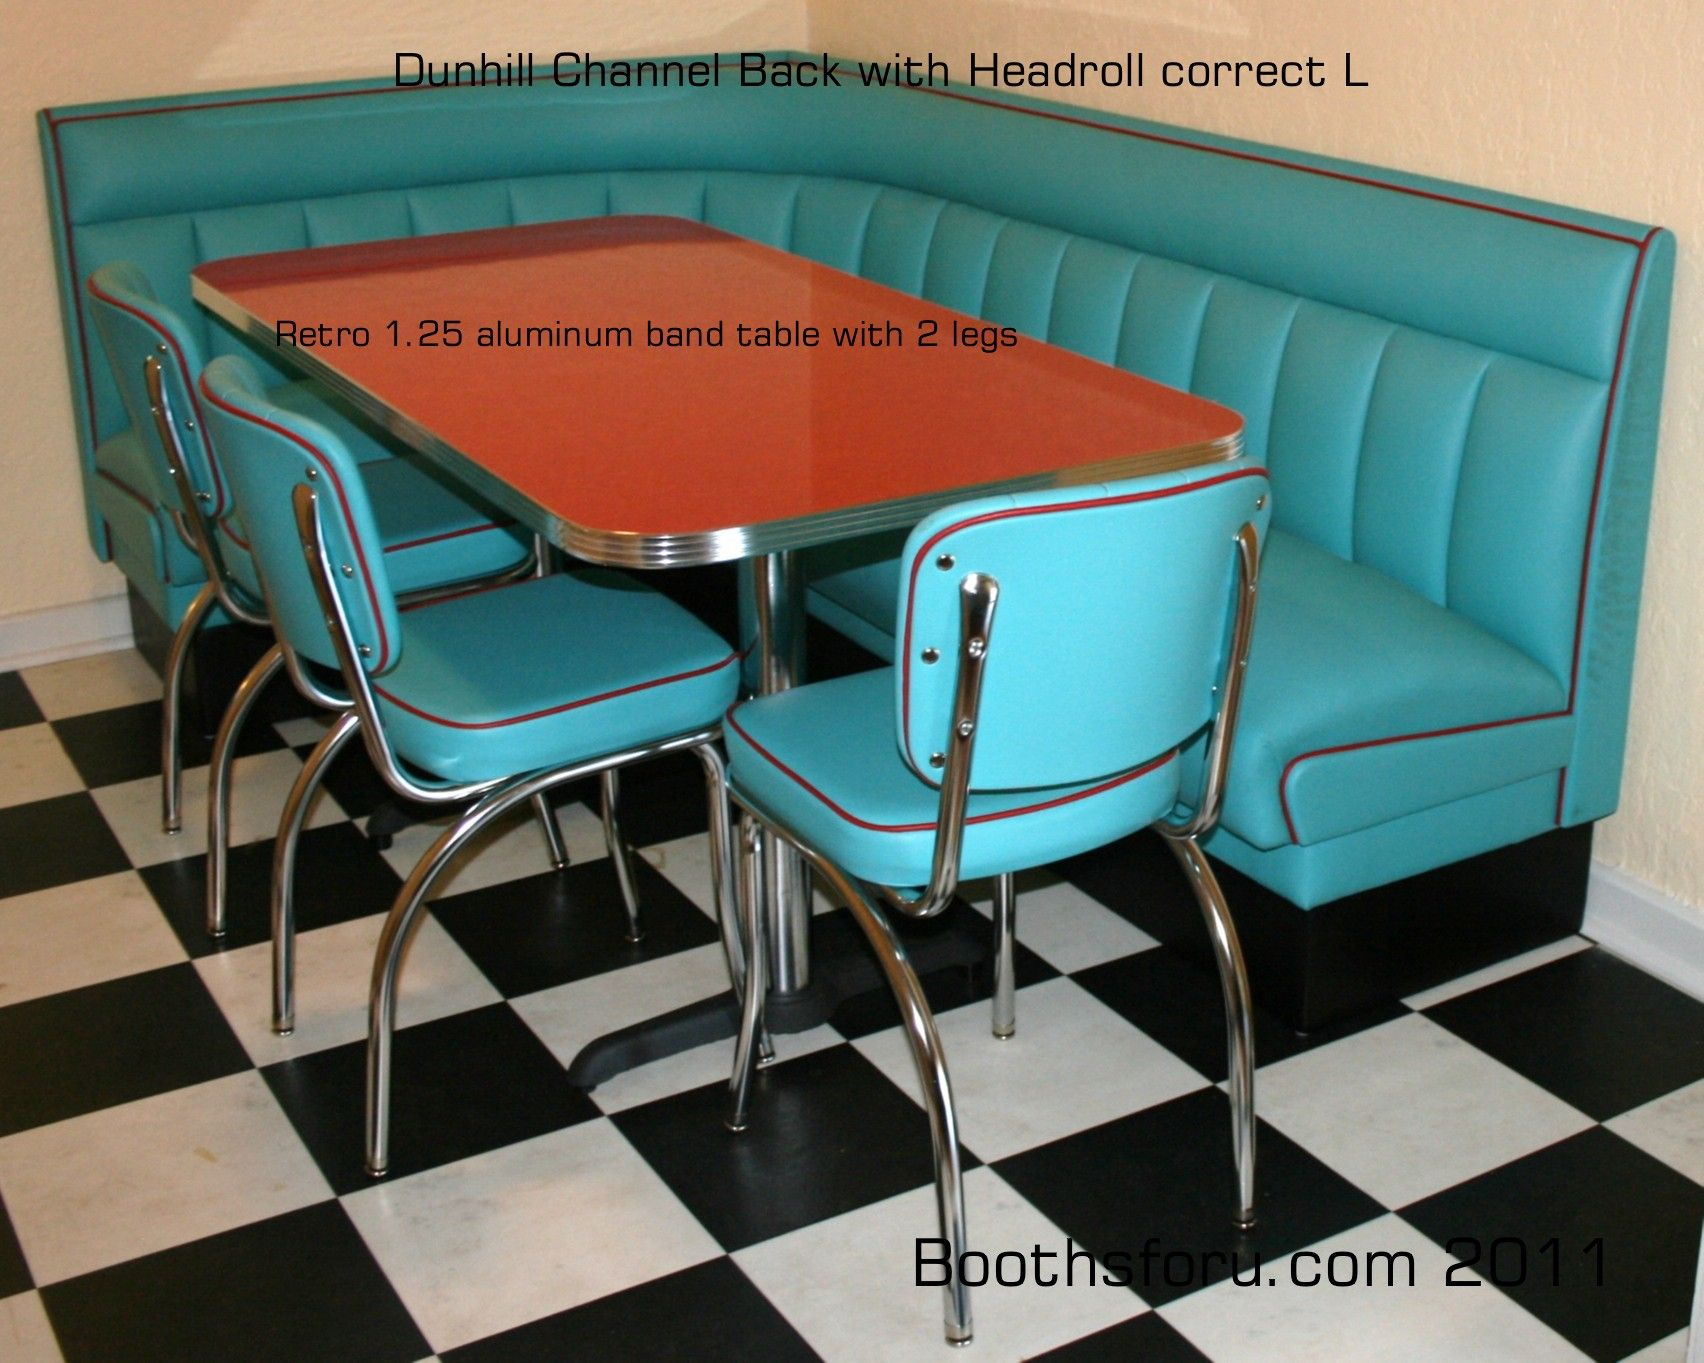 retro dining sets s kitchen table Retro Diner Booths booths and banquettes for residence bars restaurants cafe s diner s KitchenKitchen